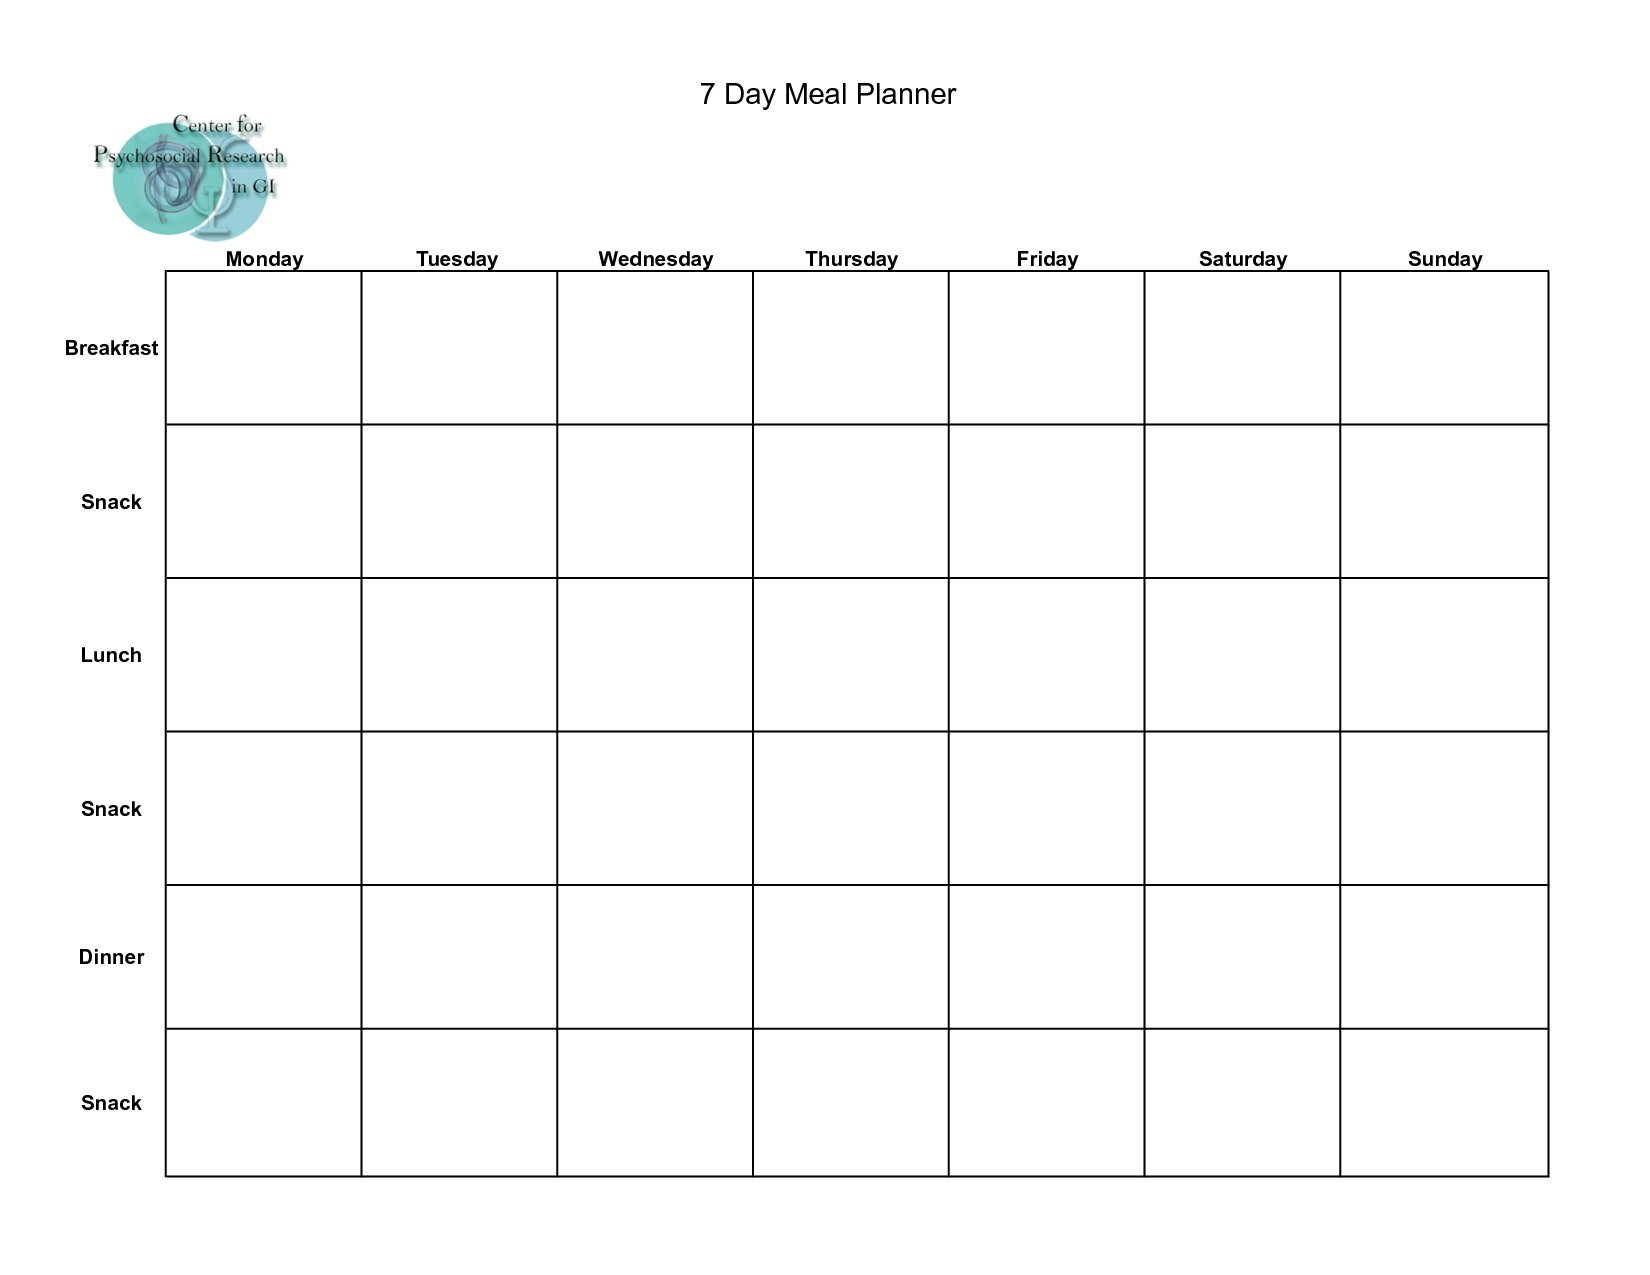 Day Meal Planner Template Excel Study Plan Food Schedule Free Pdf with 7 Day Meal Planner Template